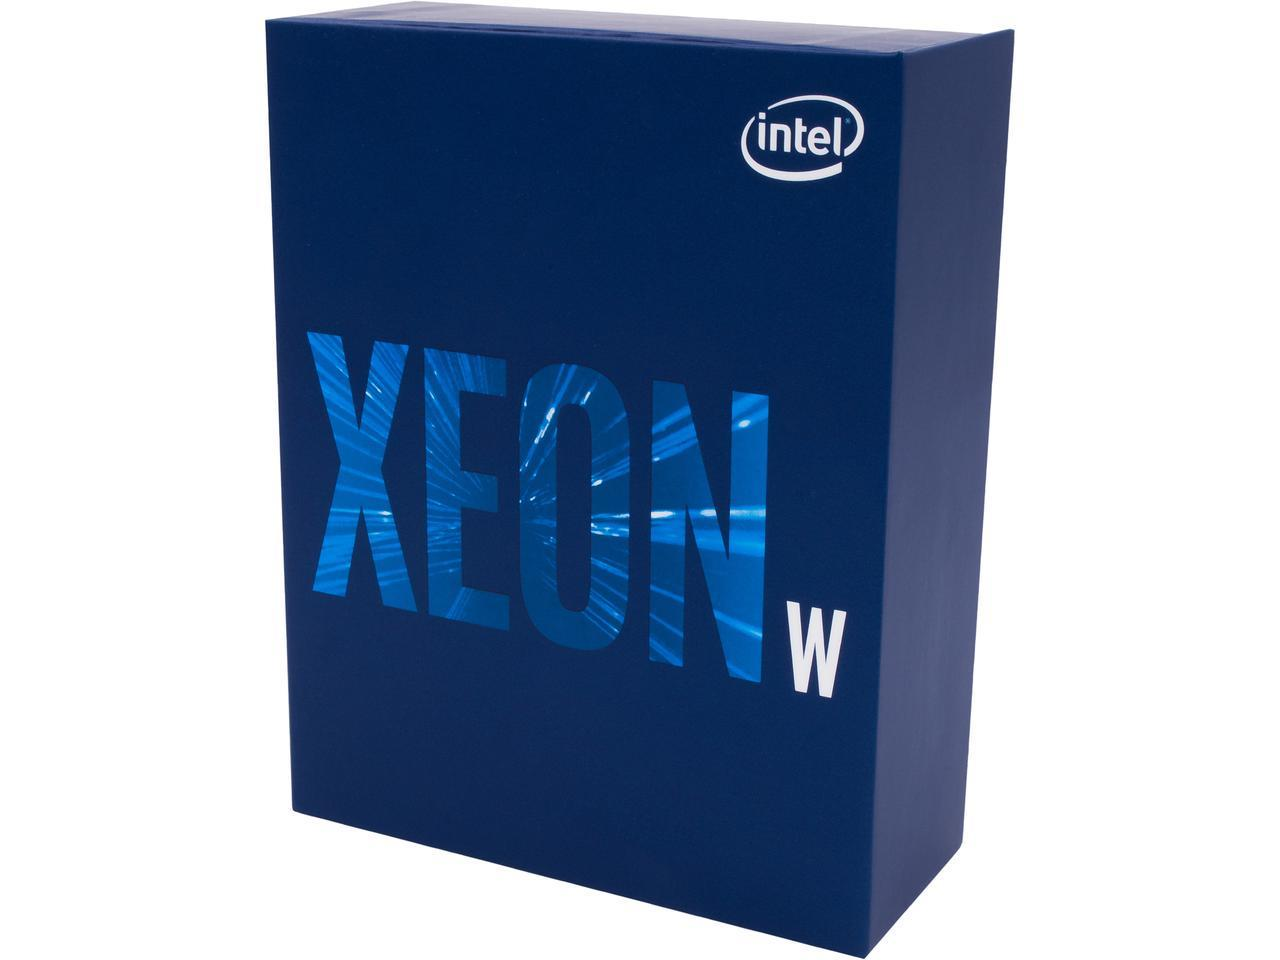 Intel Xeon W-3175X 3.10GHz 28-Core 8.00GT/s DMI3 38.5MB Cache Socket FCLGA3647 (SR6FL) Server Processor